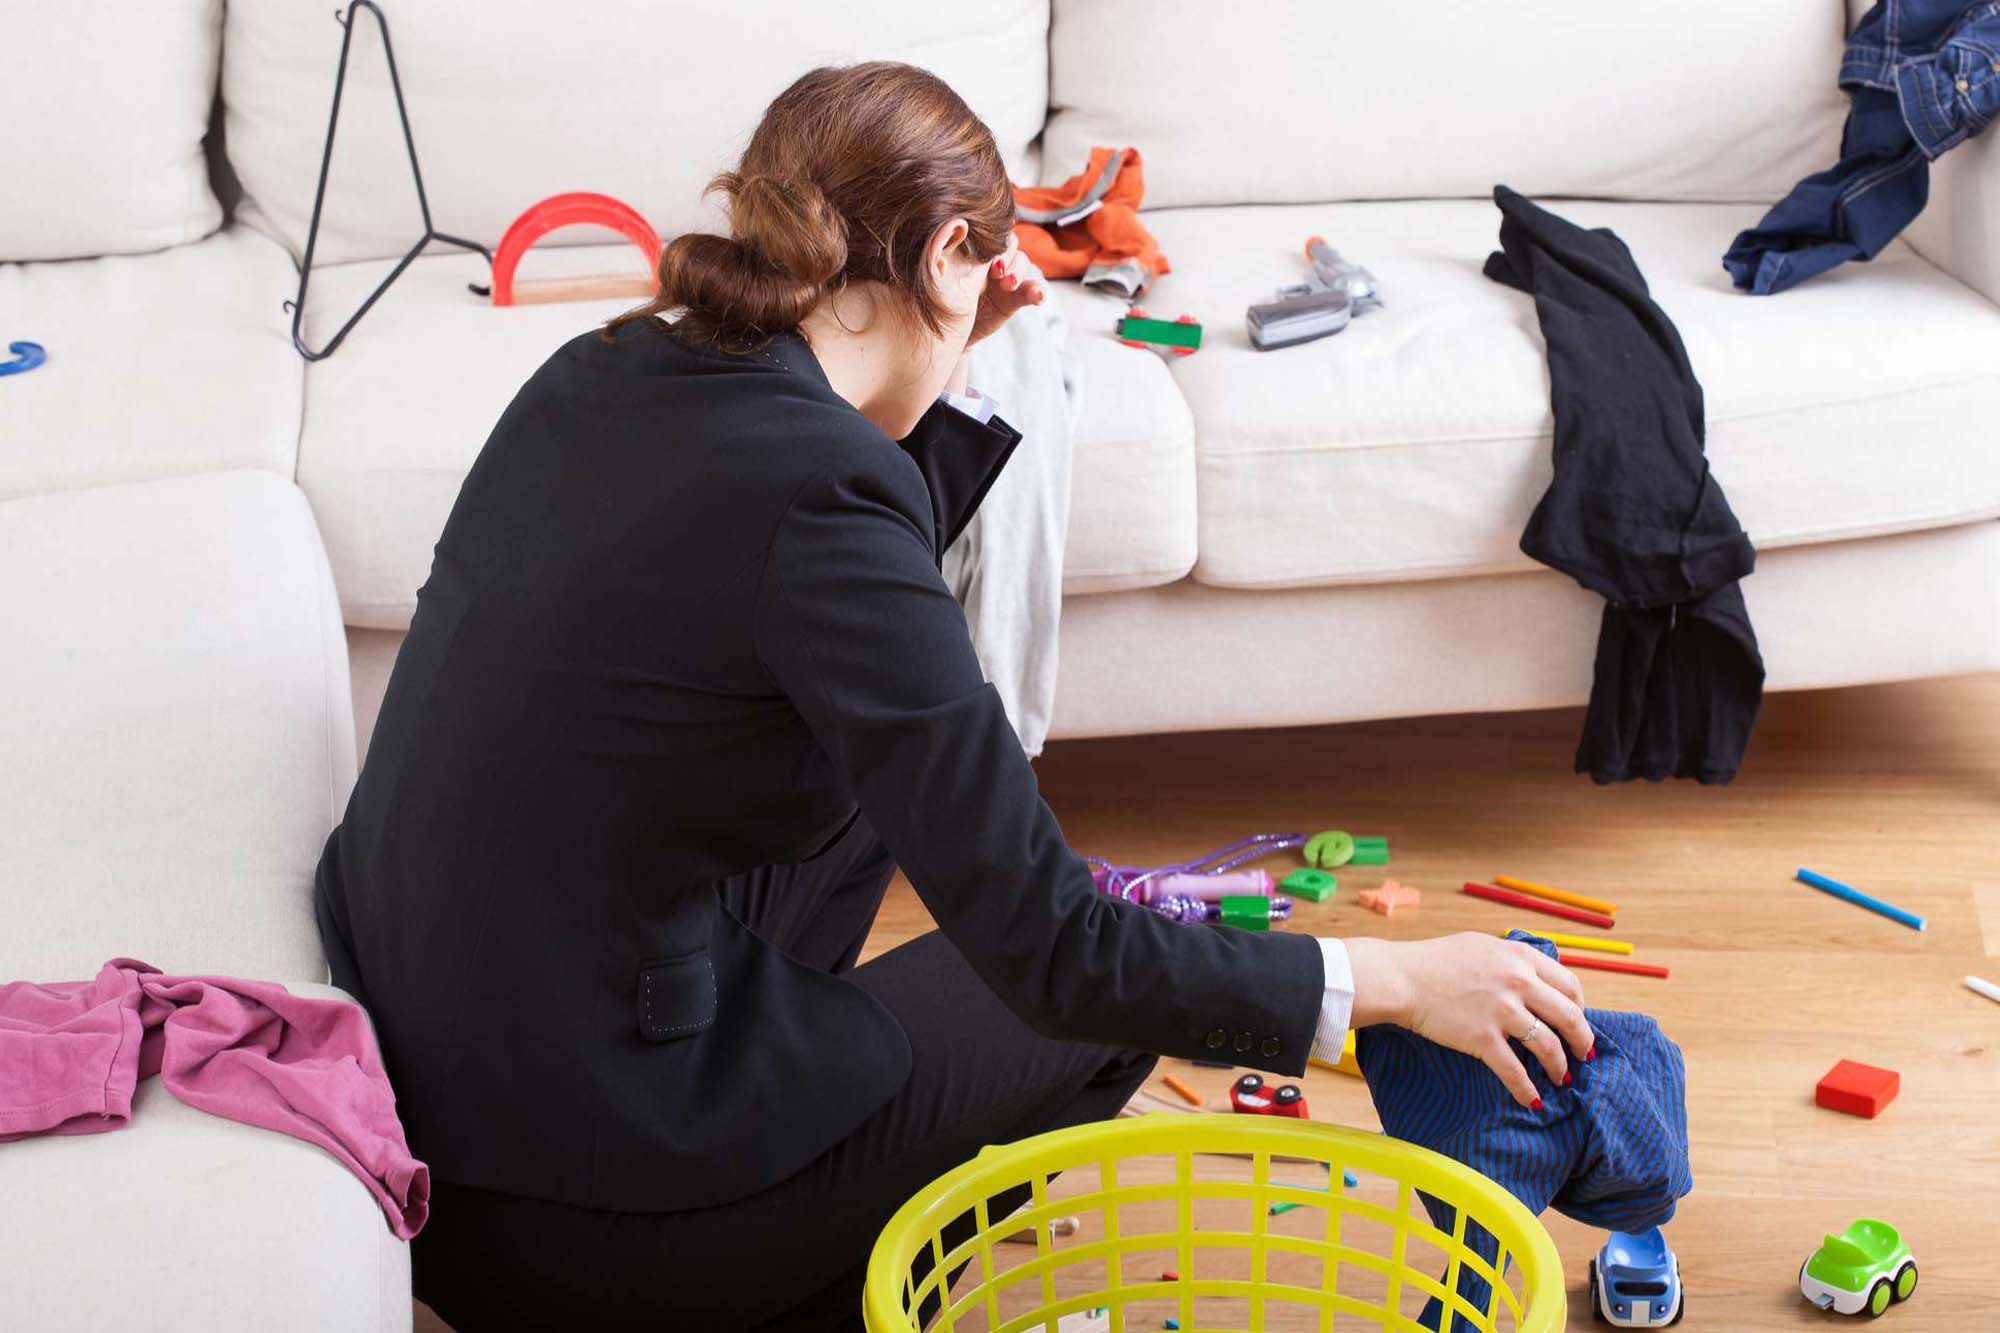 Tenants May Vanish Without Cleaning Up Their Belongings